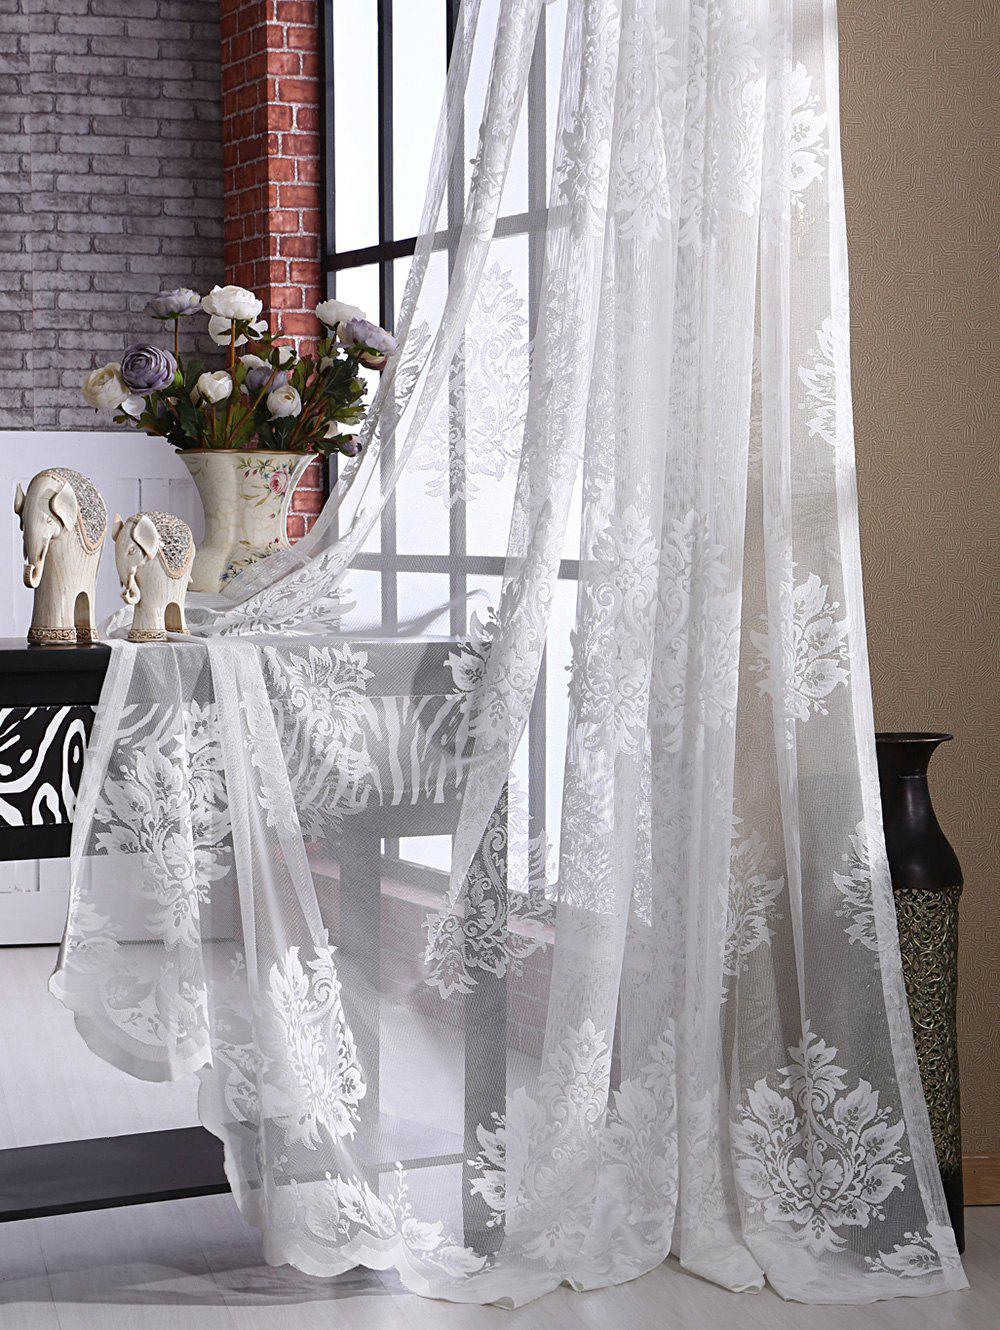 2018 rideau en tulle transparente pour balcon fen tre et porte blanc largeur pouces longueur. Black Bedroom Furniture Sets. Home Design Ideas